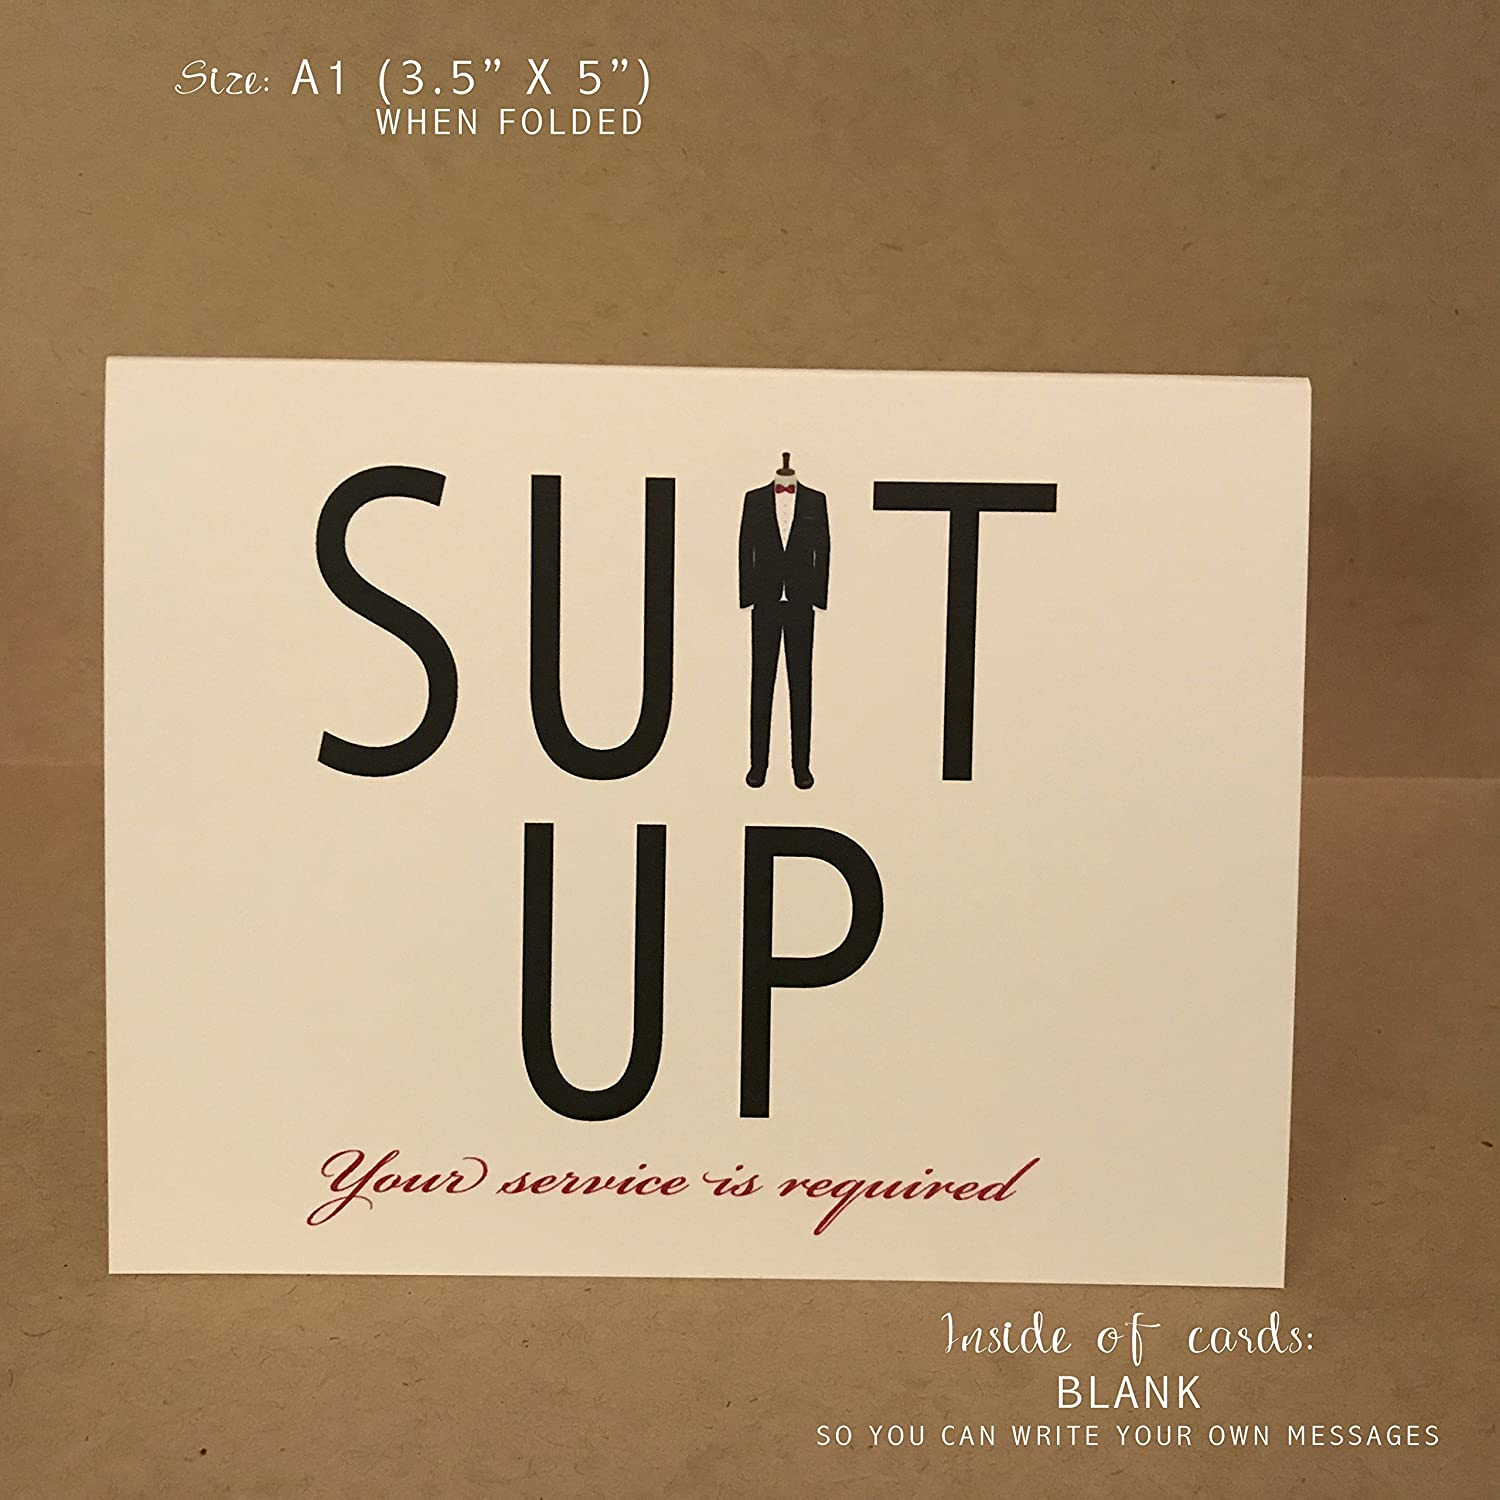 Will You Be My Groomsman Card Best Man Card Groomsmen Cards {Style 3 New}